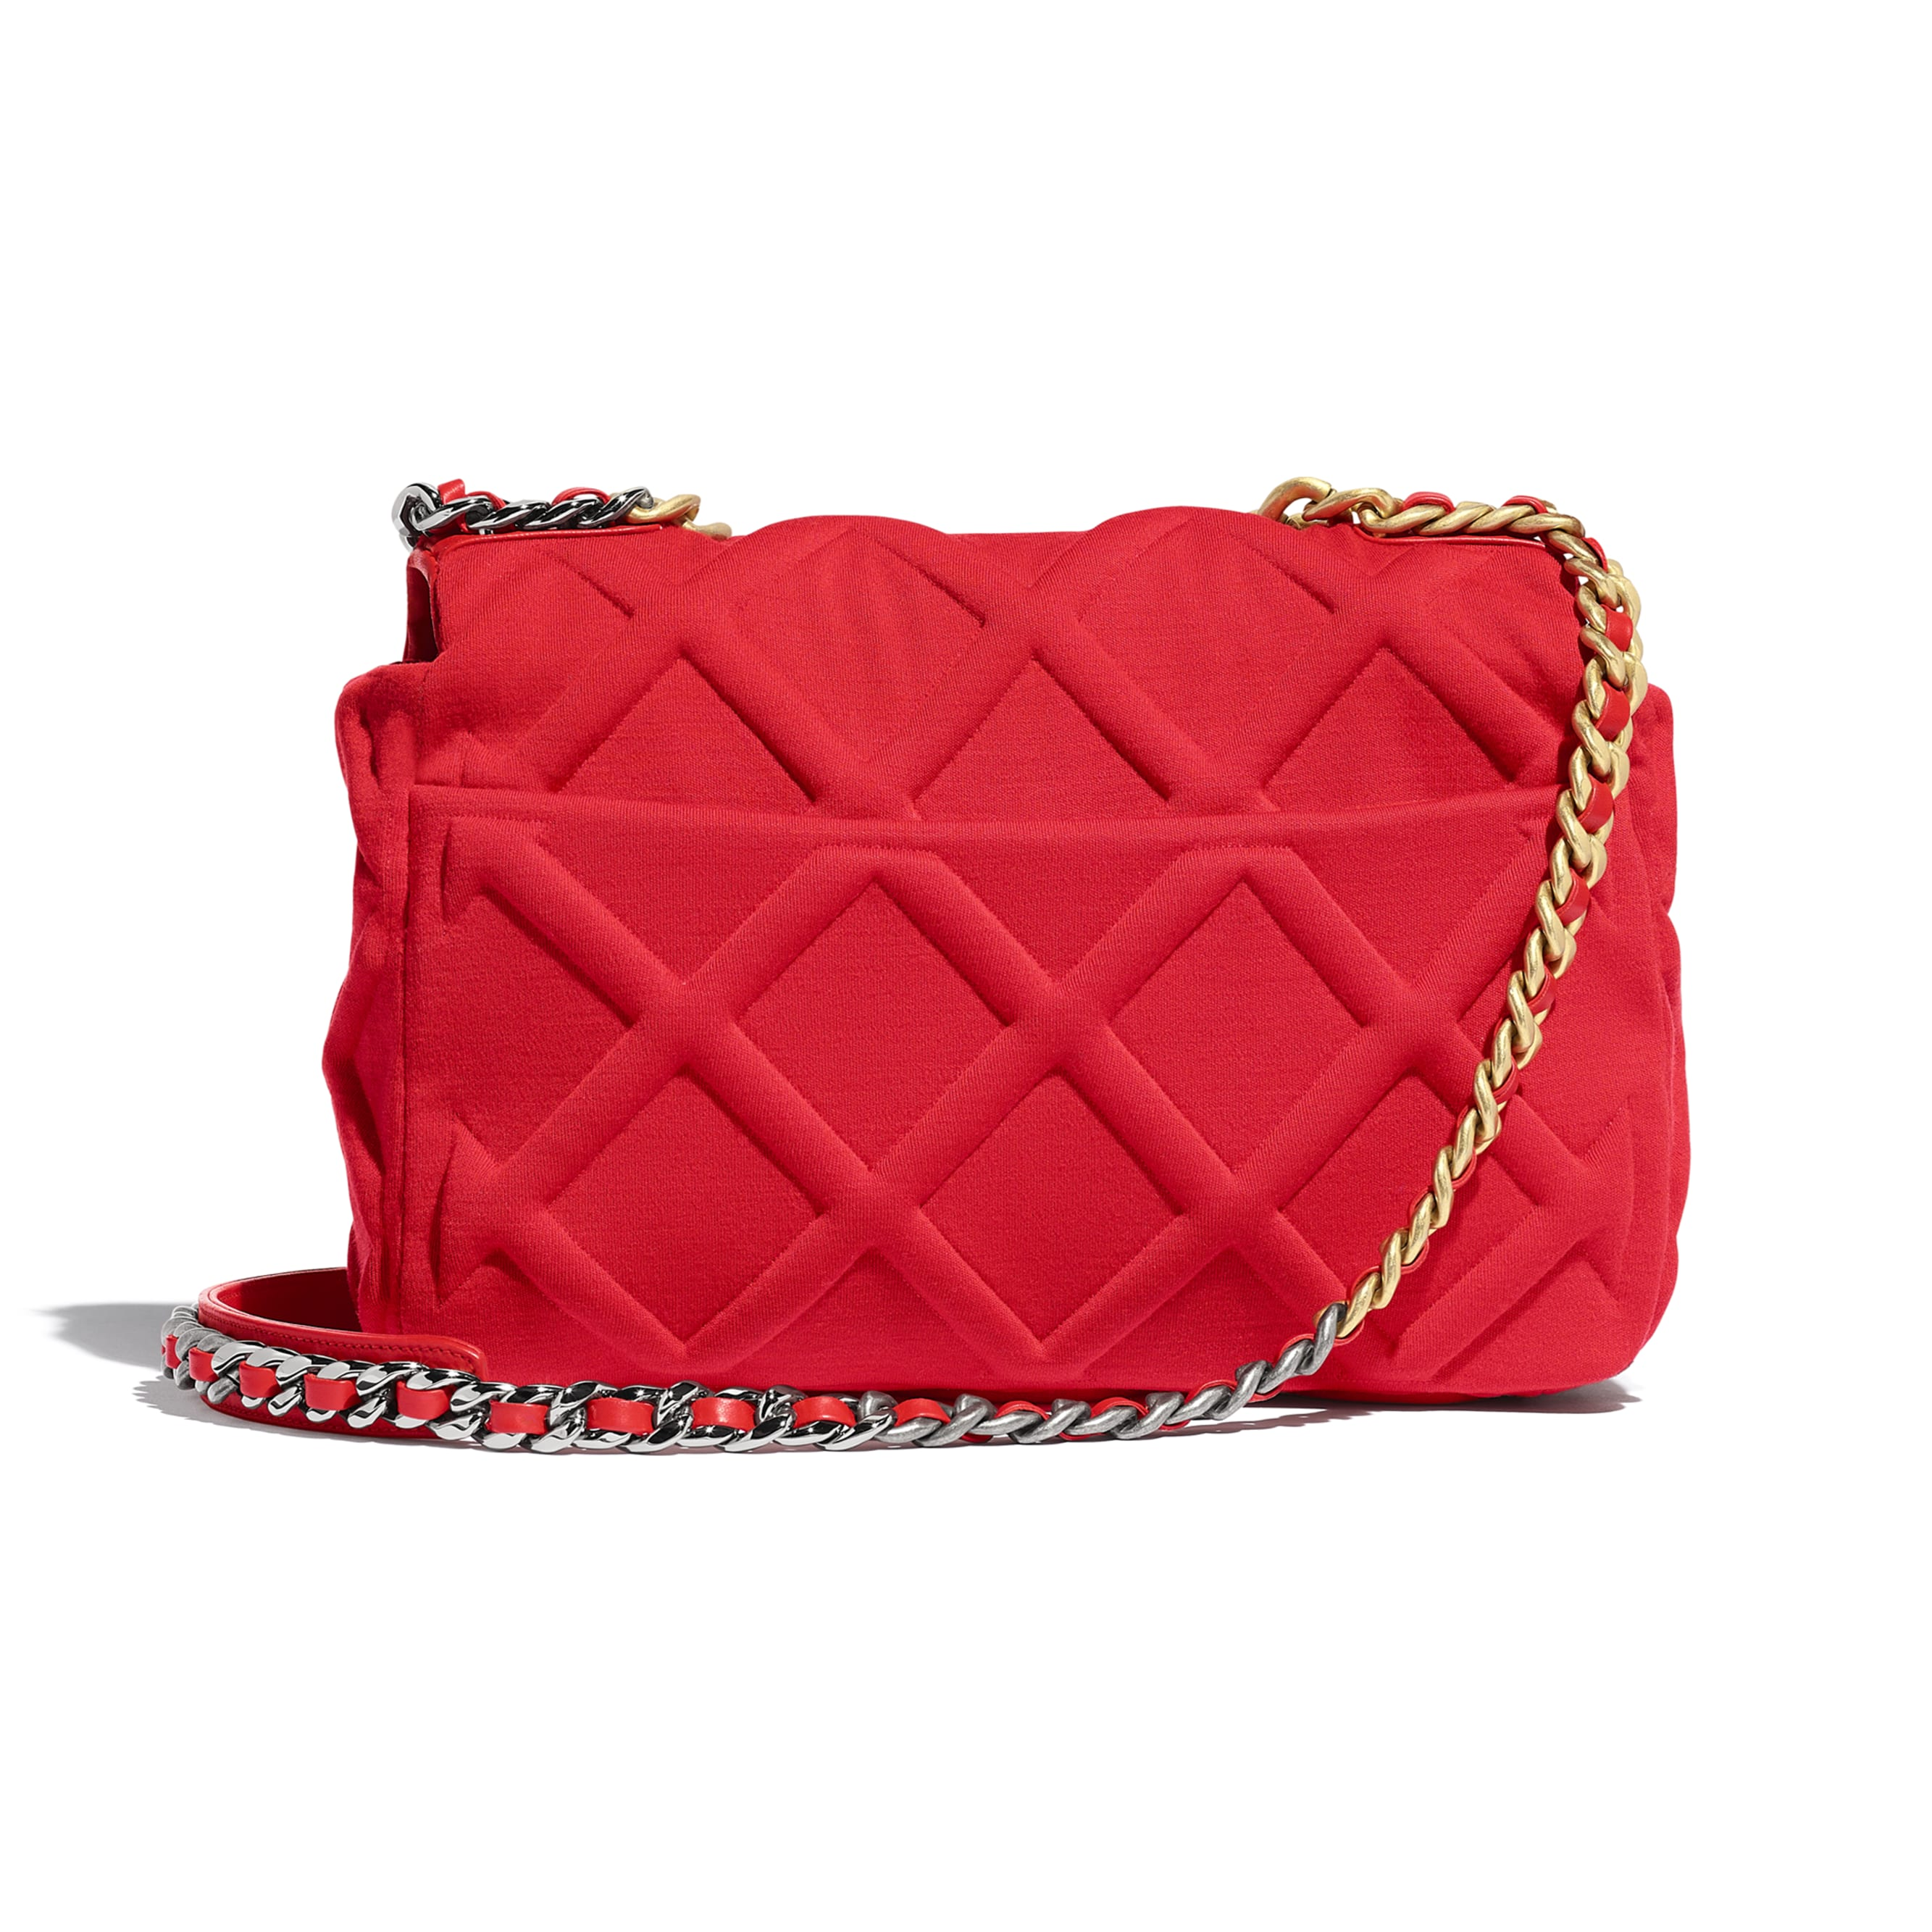 CHANEL 19 Large Flap Bag - Red - Jersey, Gold-Tone, Silver-Tone & Ruthenium-Finish Metal - Alternative view - see standard sized version